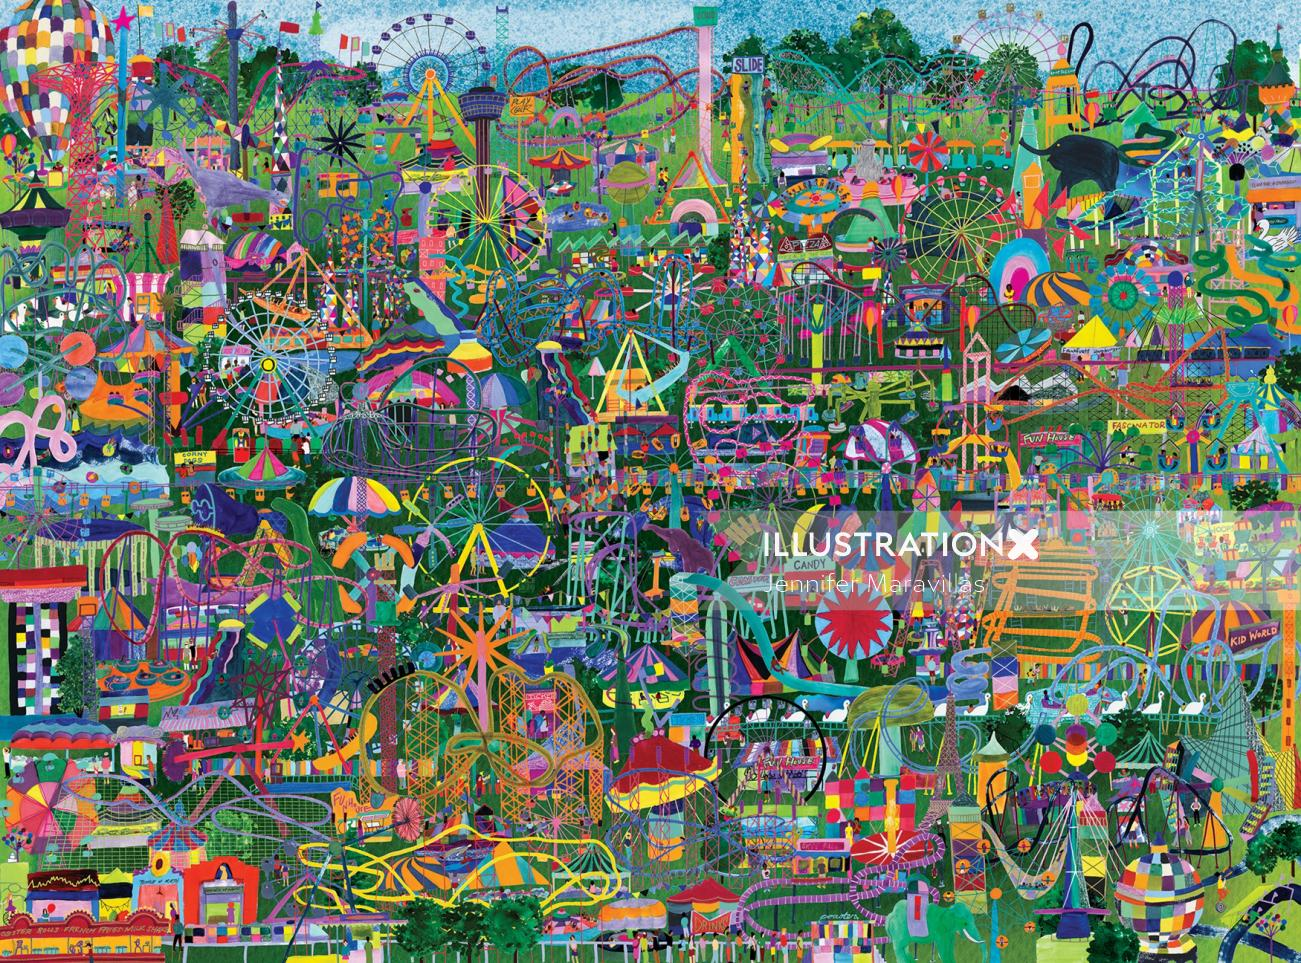 Amusement parks, illustration, puzzle